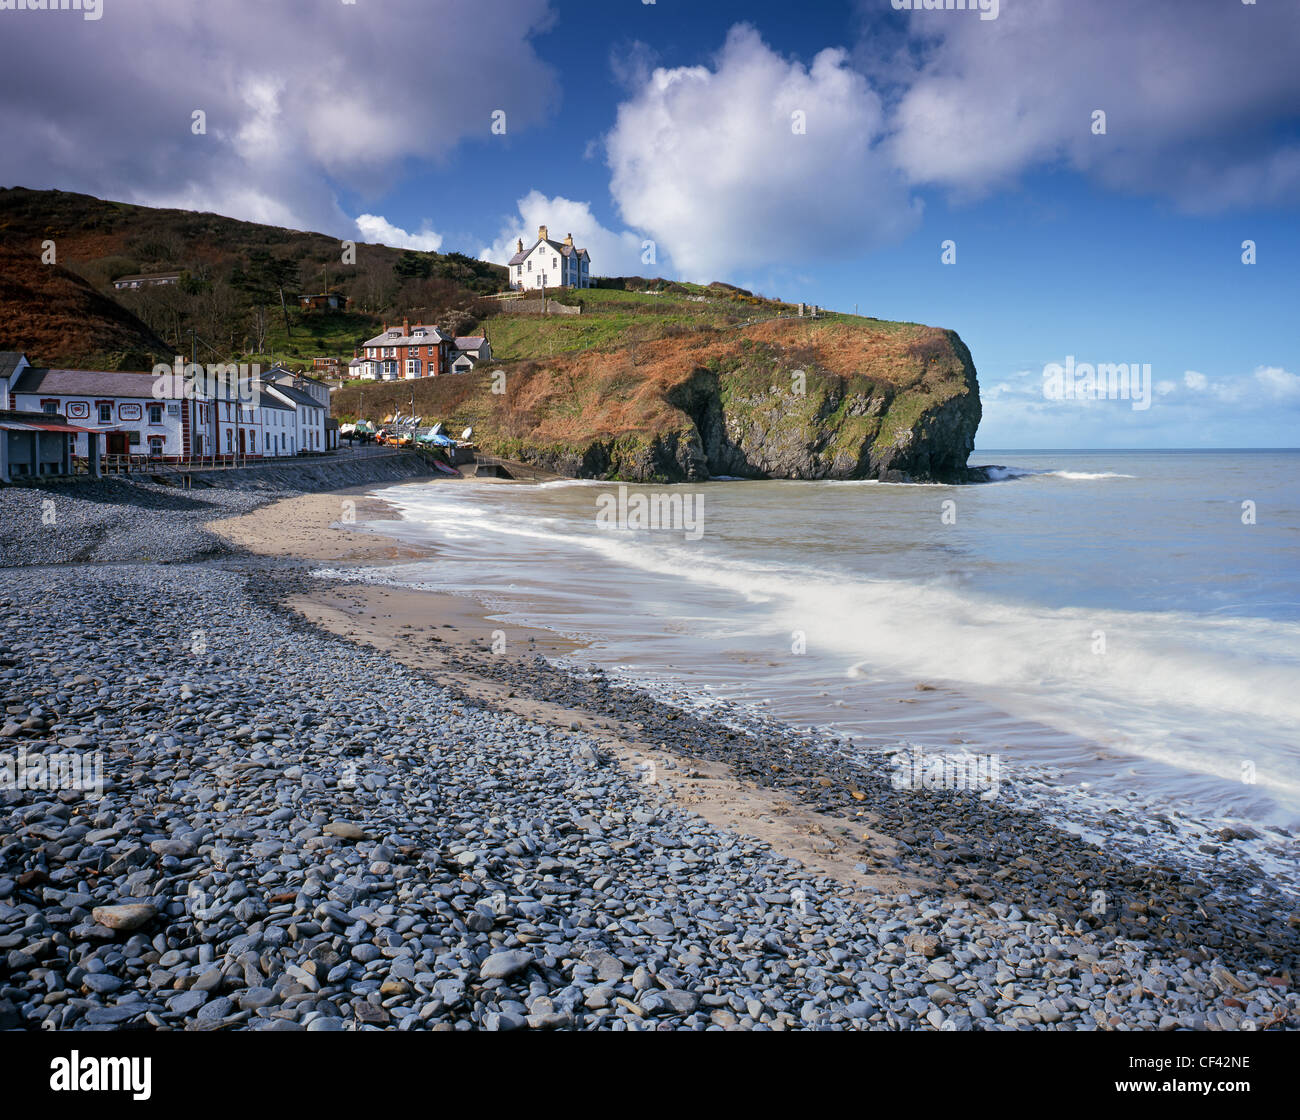 The pebbled beach on the seafront at Llangrannog. - Stock Image